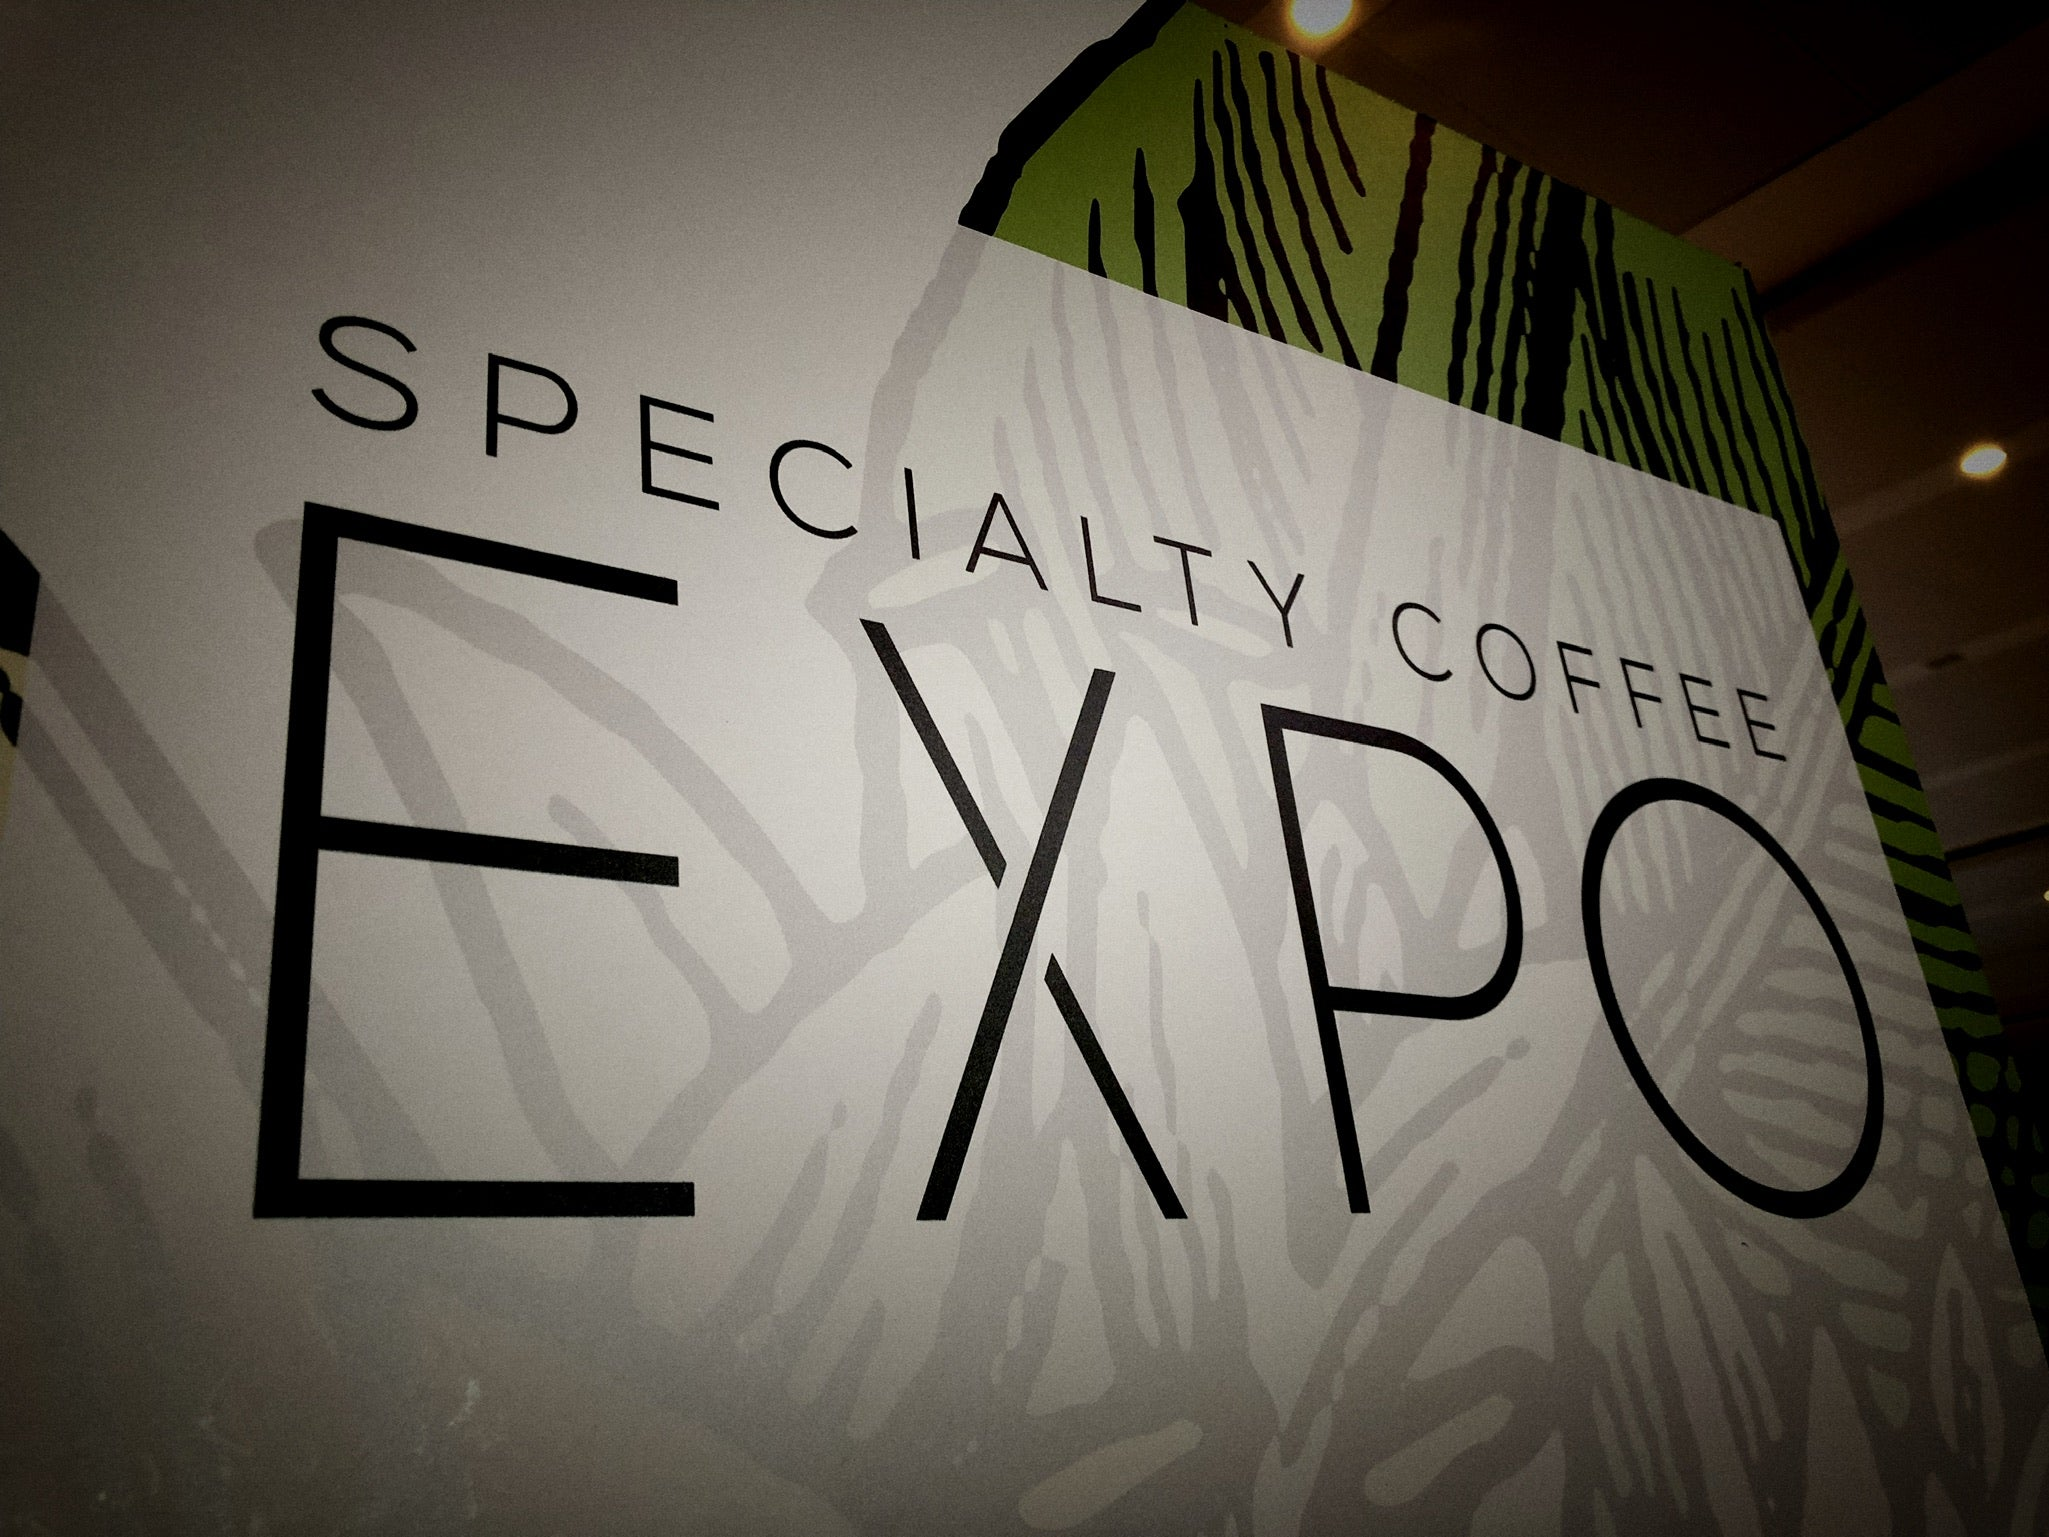 wbc19, coffee expo19, loveramics USA, loveramics, specialty coffee